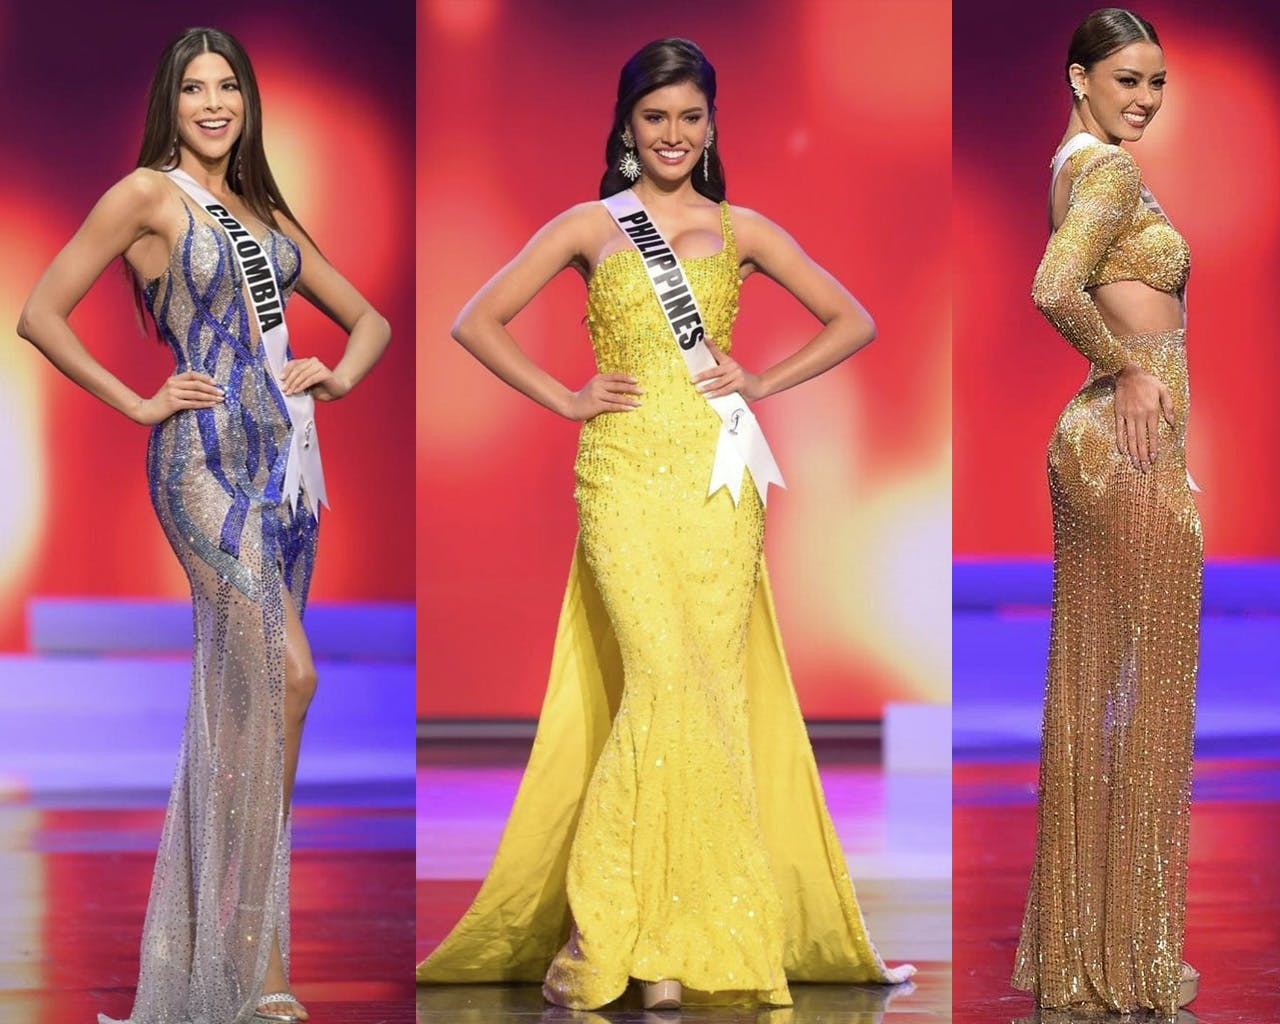 The Most Beautiful Evening Gowns at The Miss Universe Preliminary Competition